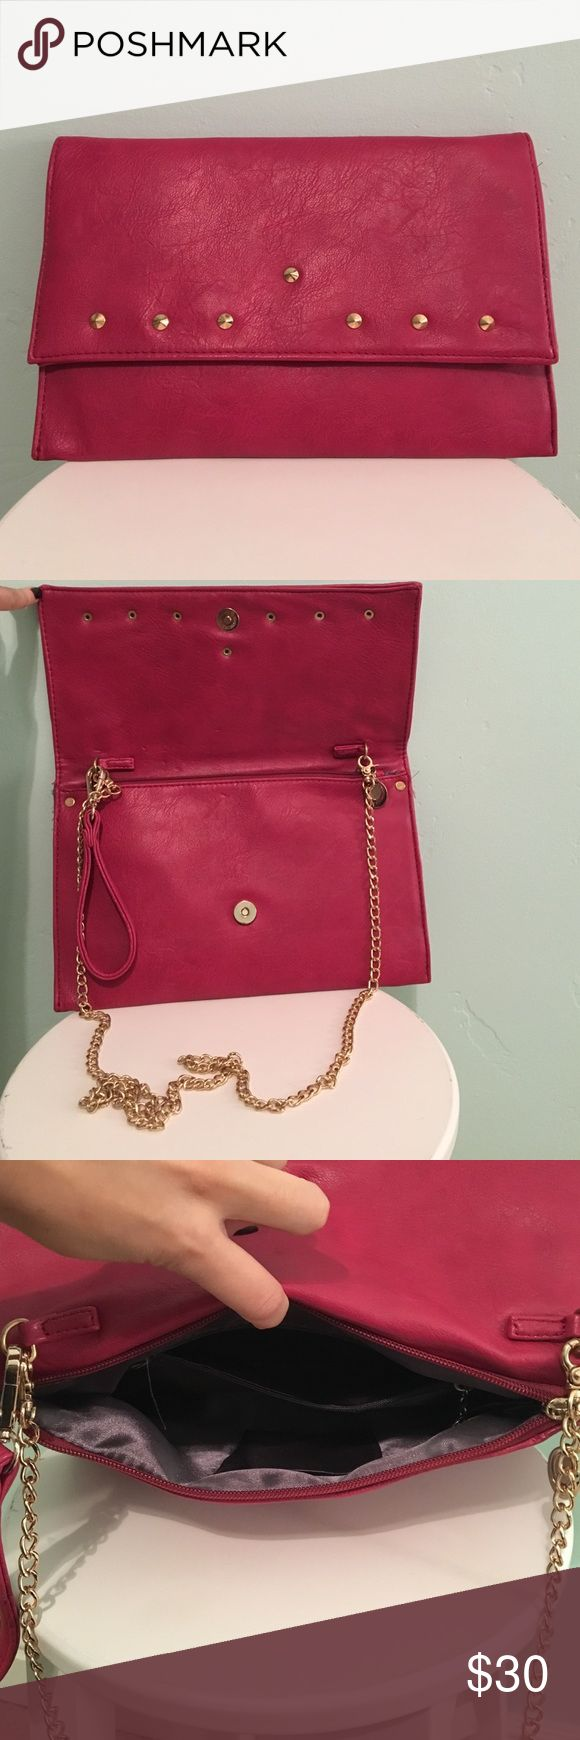 Red clutch Red clutch, from Italy🇮🇹, comes with gold chain to use as a purse. Never been use Bags Clutches & Wristlets